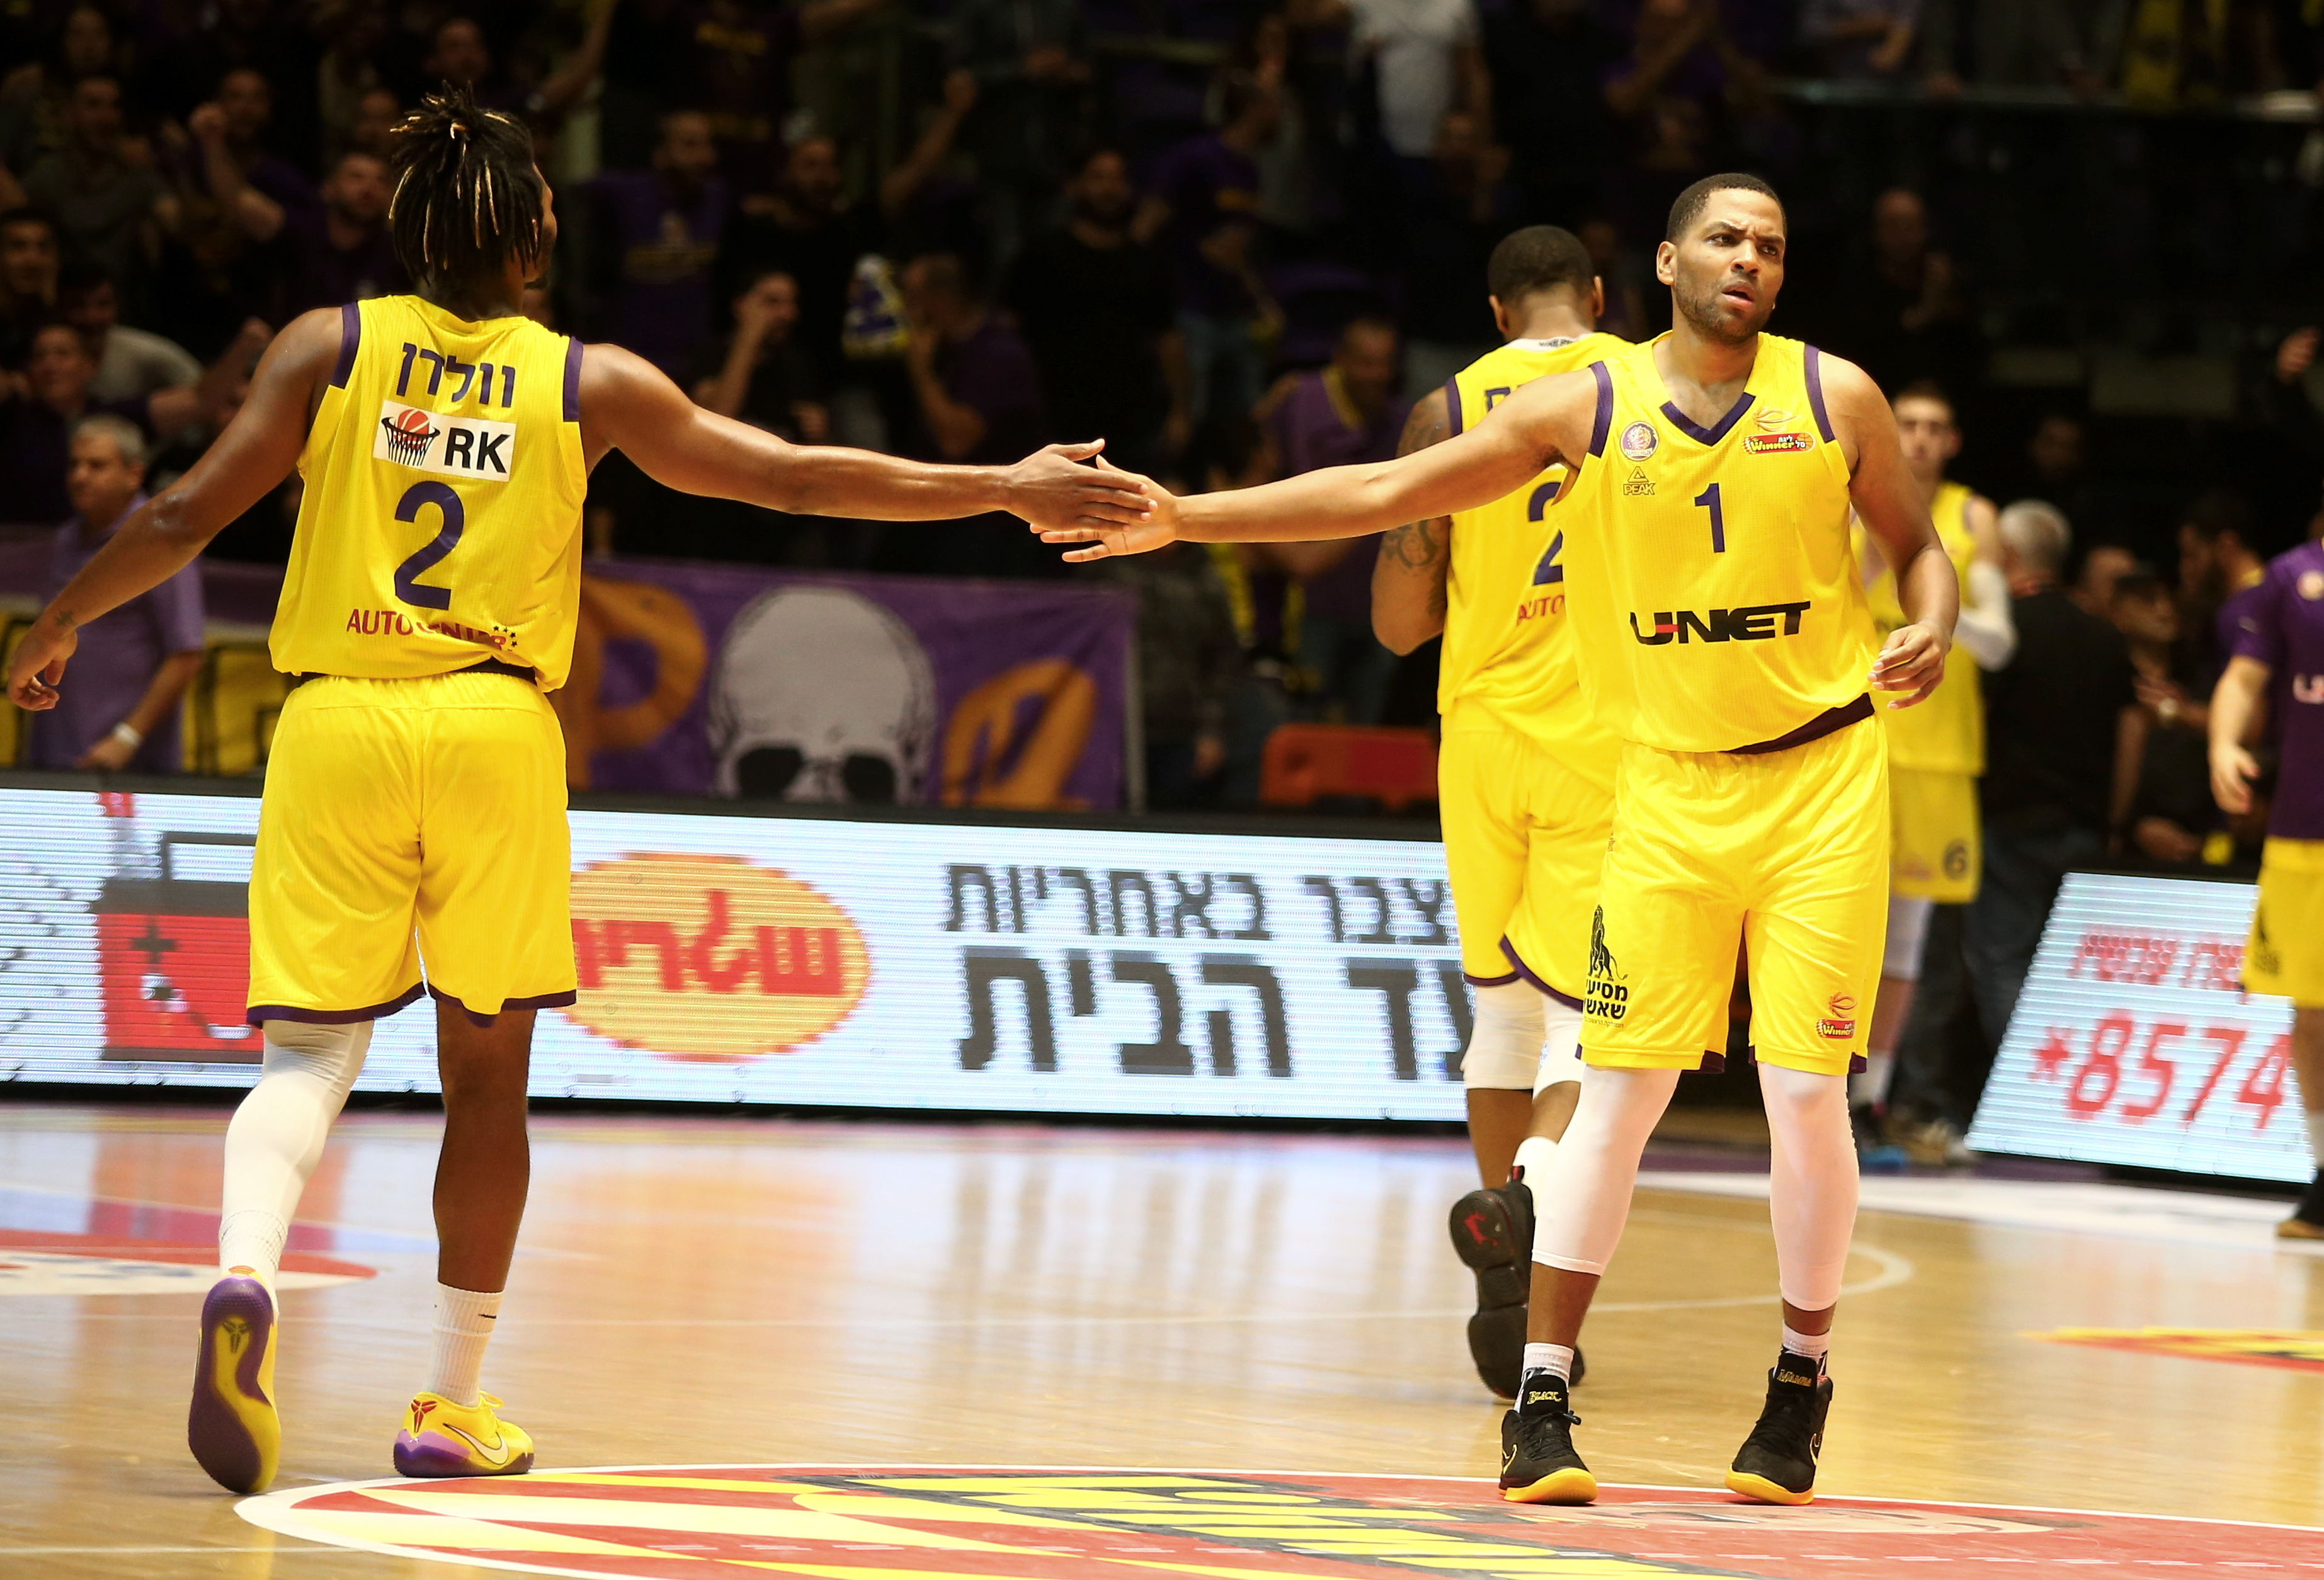 Day 7: Hapoel Holon - Gilboa/Galil ...